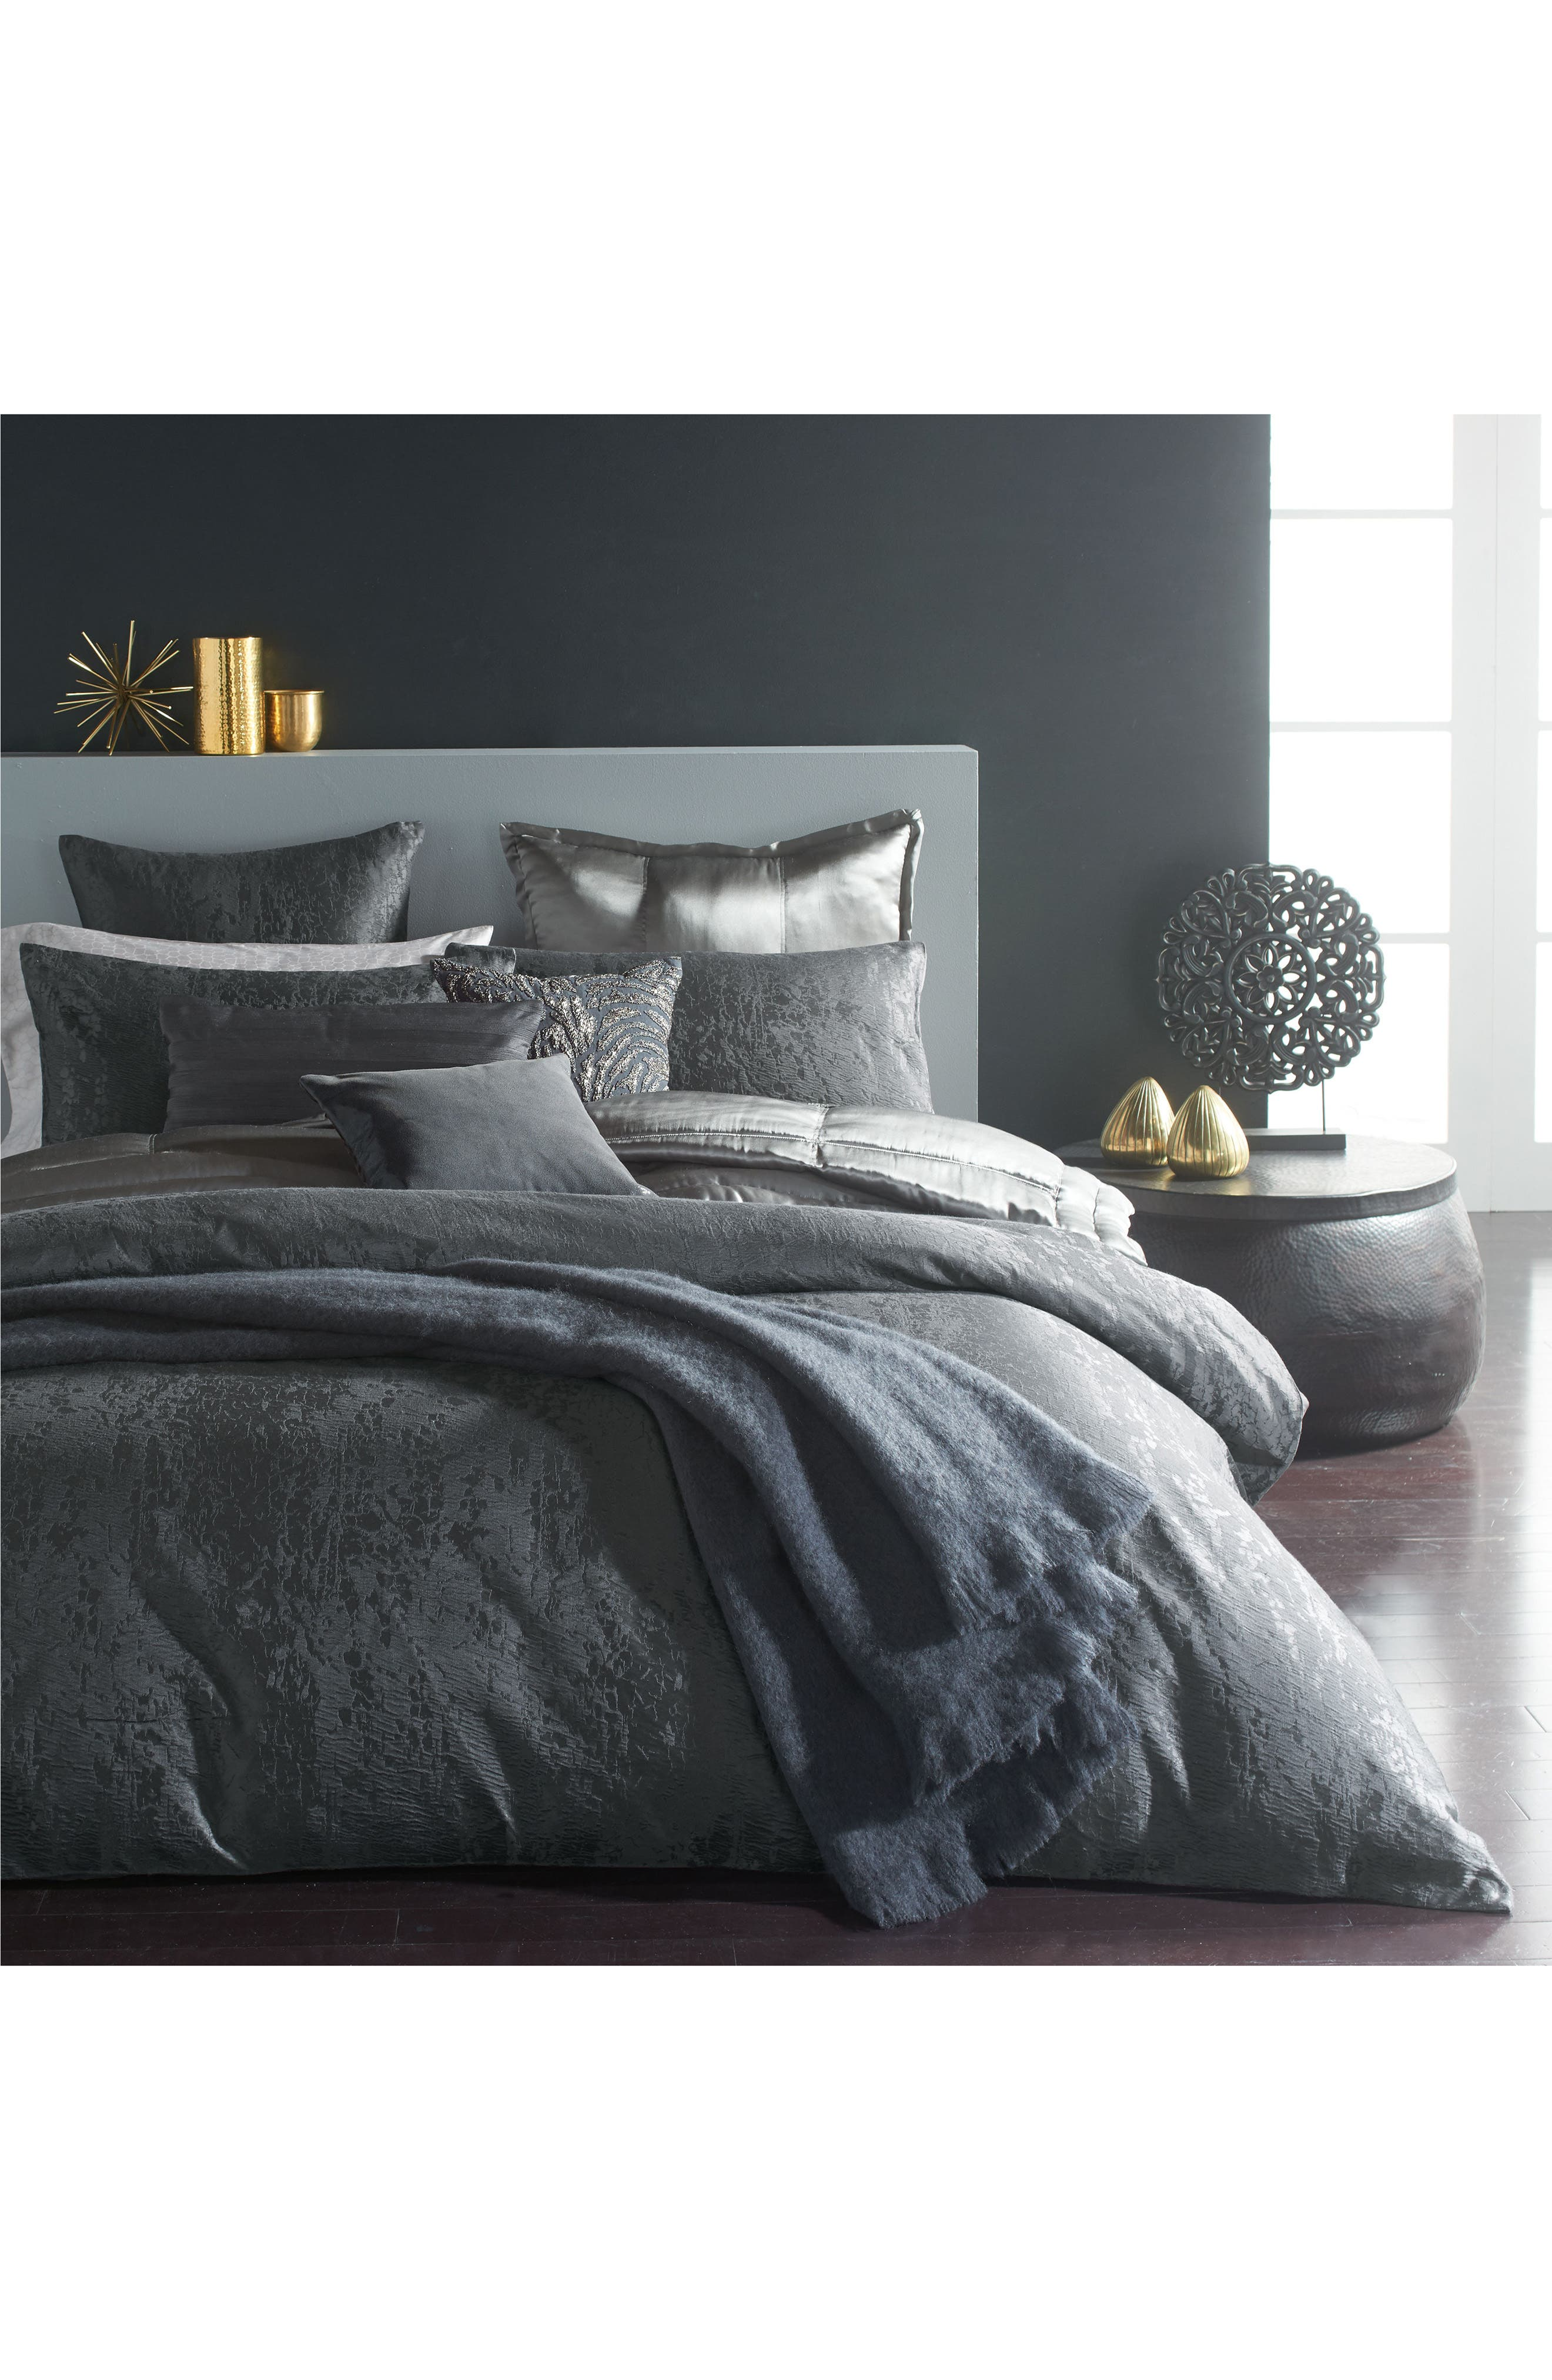 DONNA KARAN NEW YORK, Donna Karan Moonscape Euro Sham, Alternate thumbnail 2, color, CHARCOAL